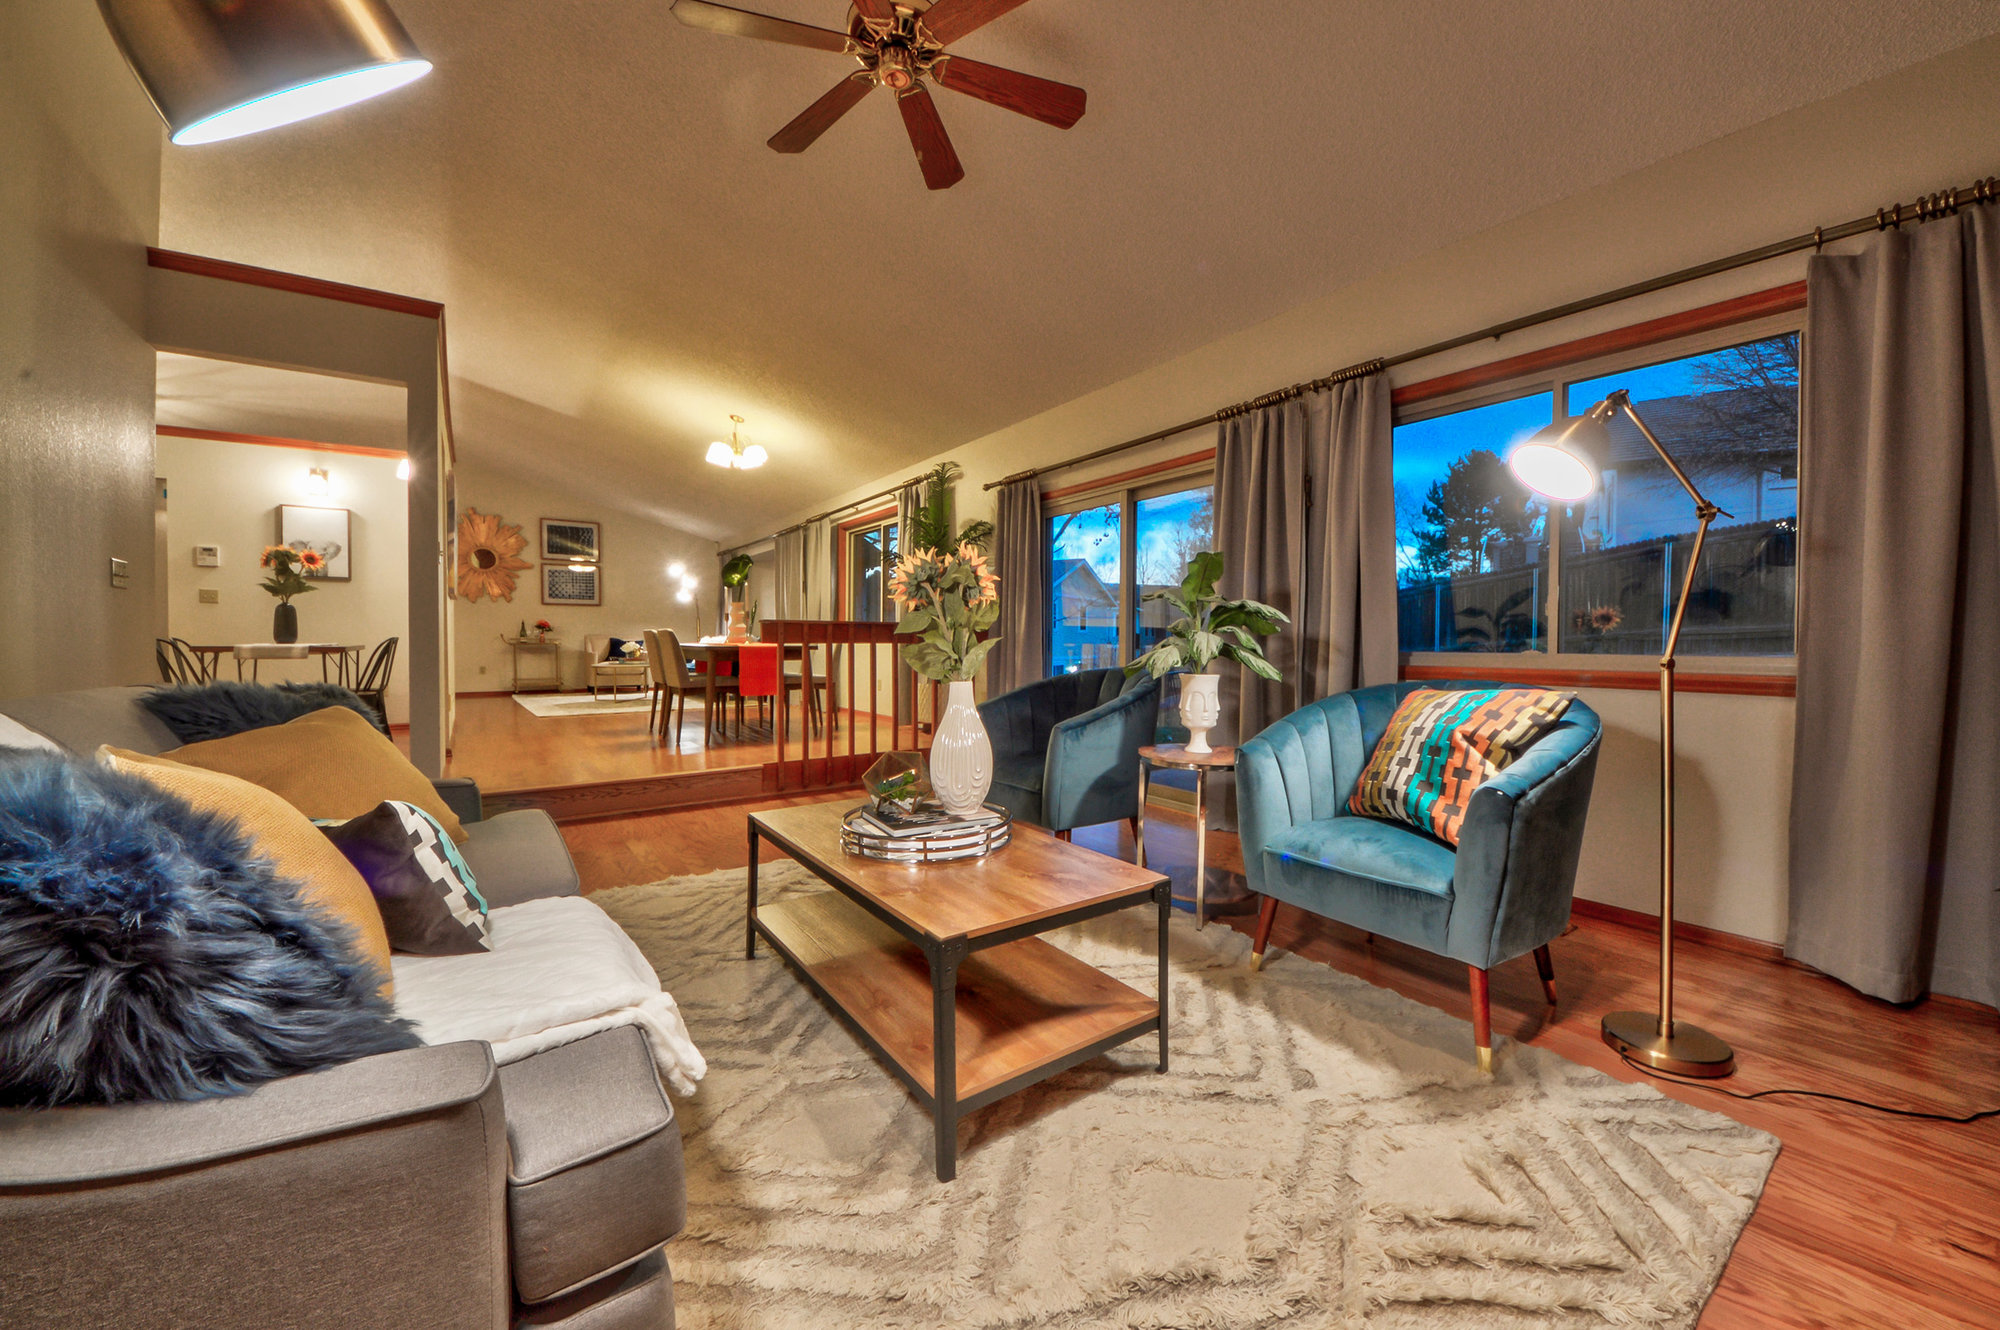 Colorado Springs Home staging tips